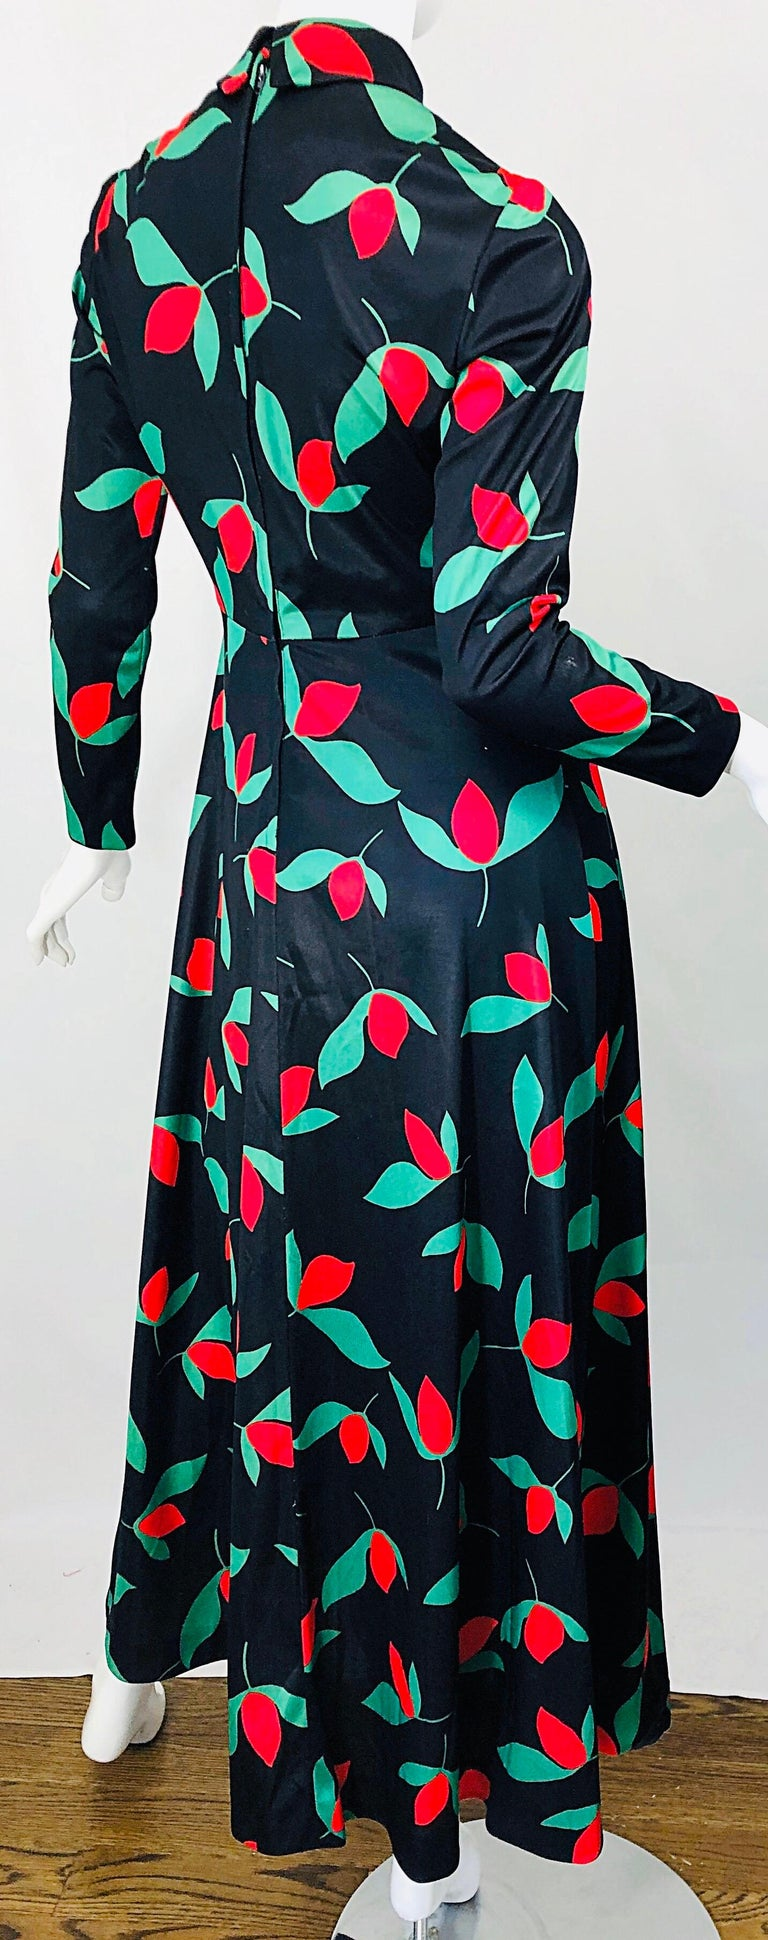 1970s Emilio Borghese Tulip Print Black + Green + Red Vintage 70s Maxi Dress For Sale 6